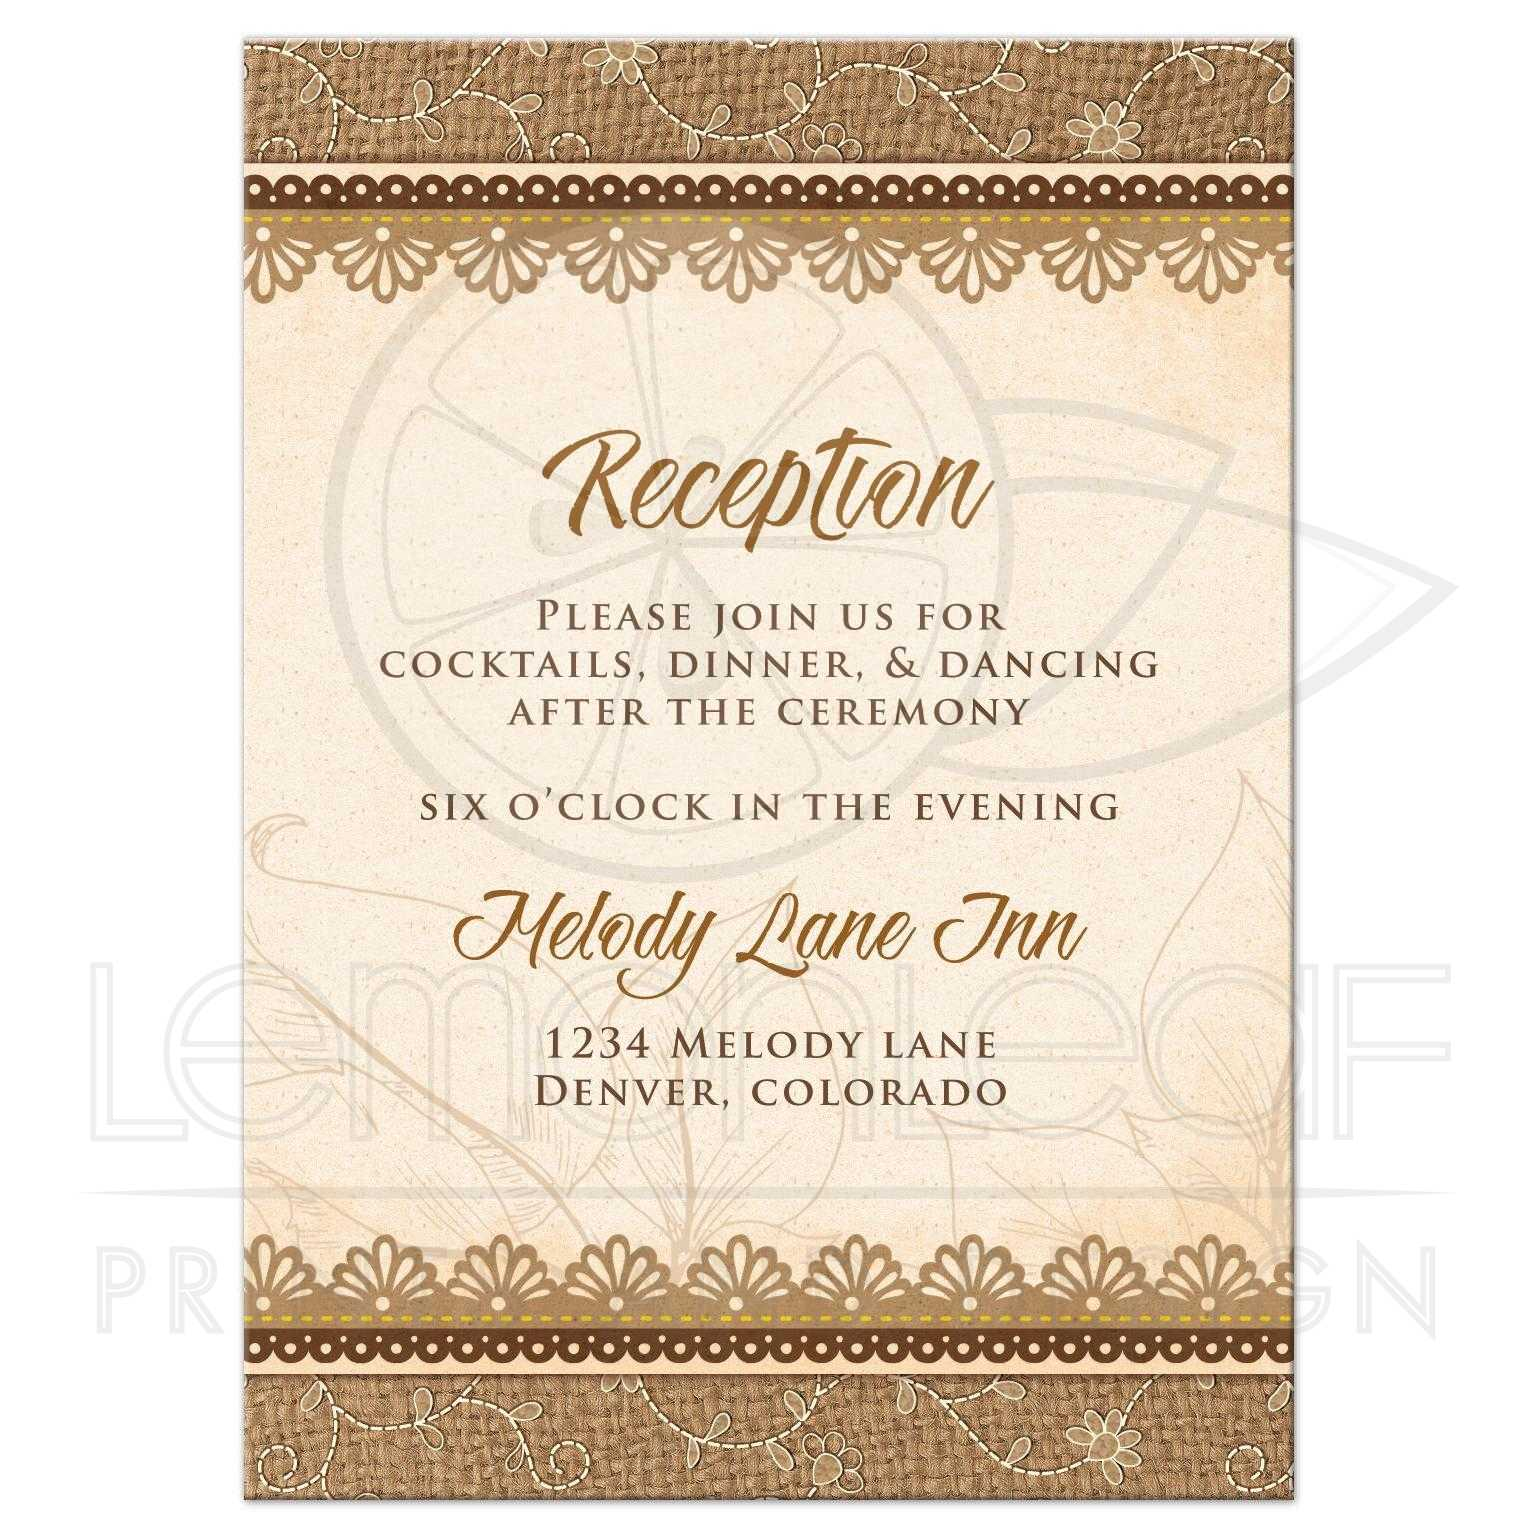 Awesome Elegant Rustic Burlap And Lace Wedding Reception Insert Card Front ... Amazing Design